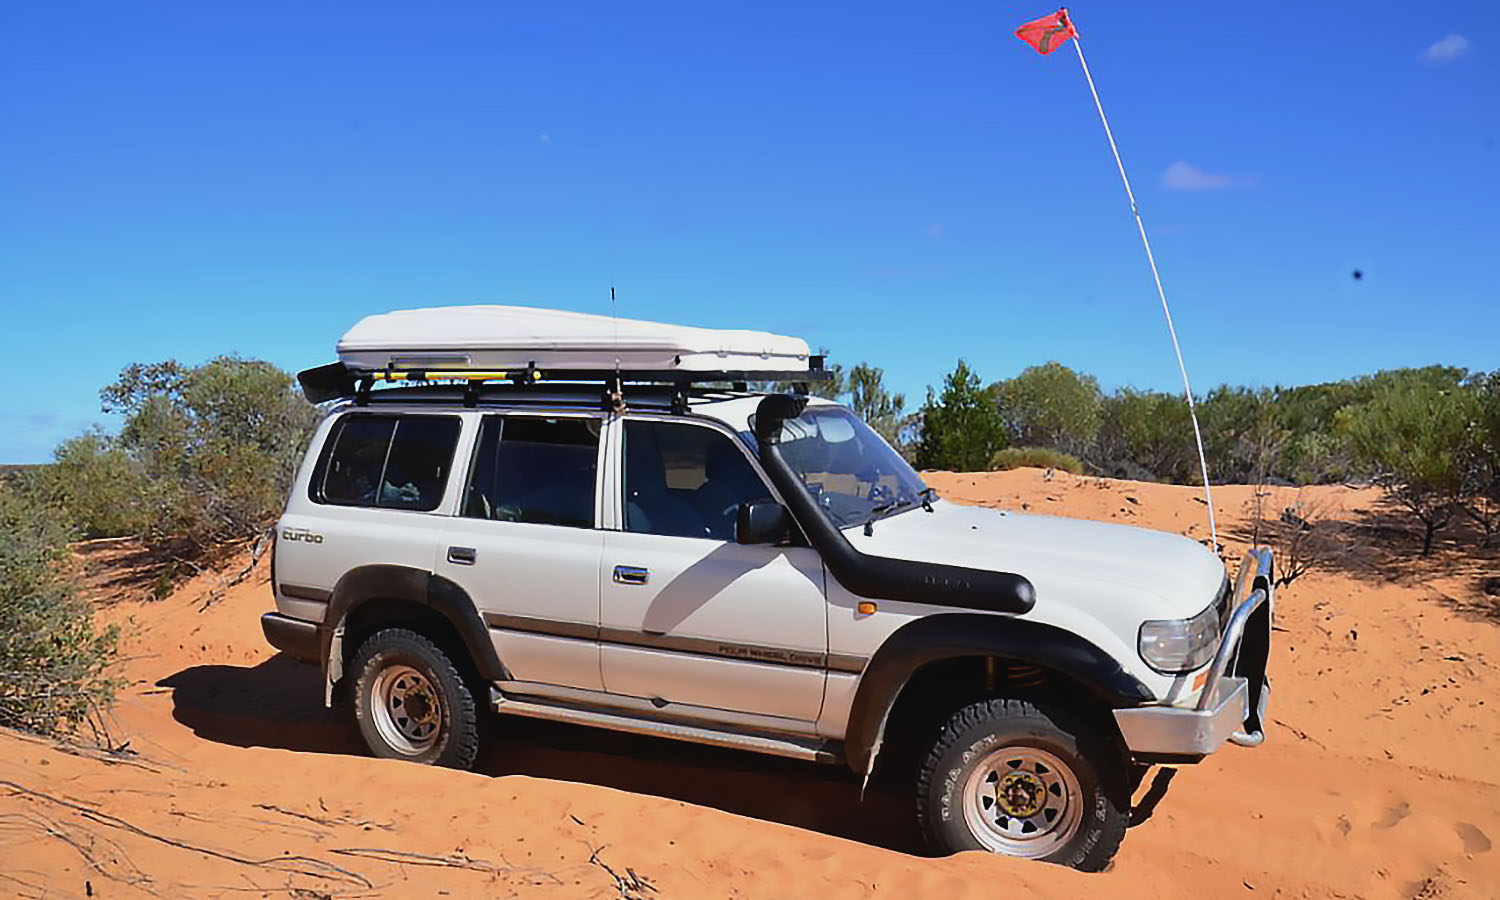 Hannibal Roof Racks for 80 Series Toyota Landcruiser